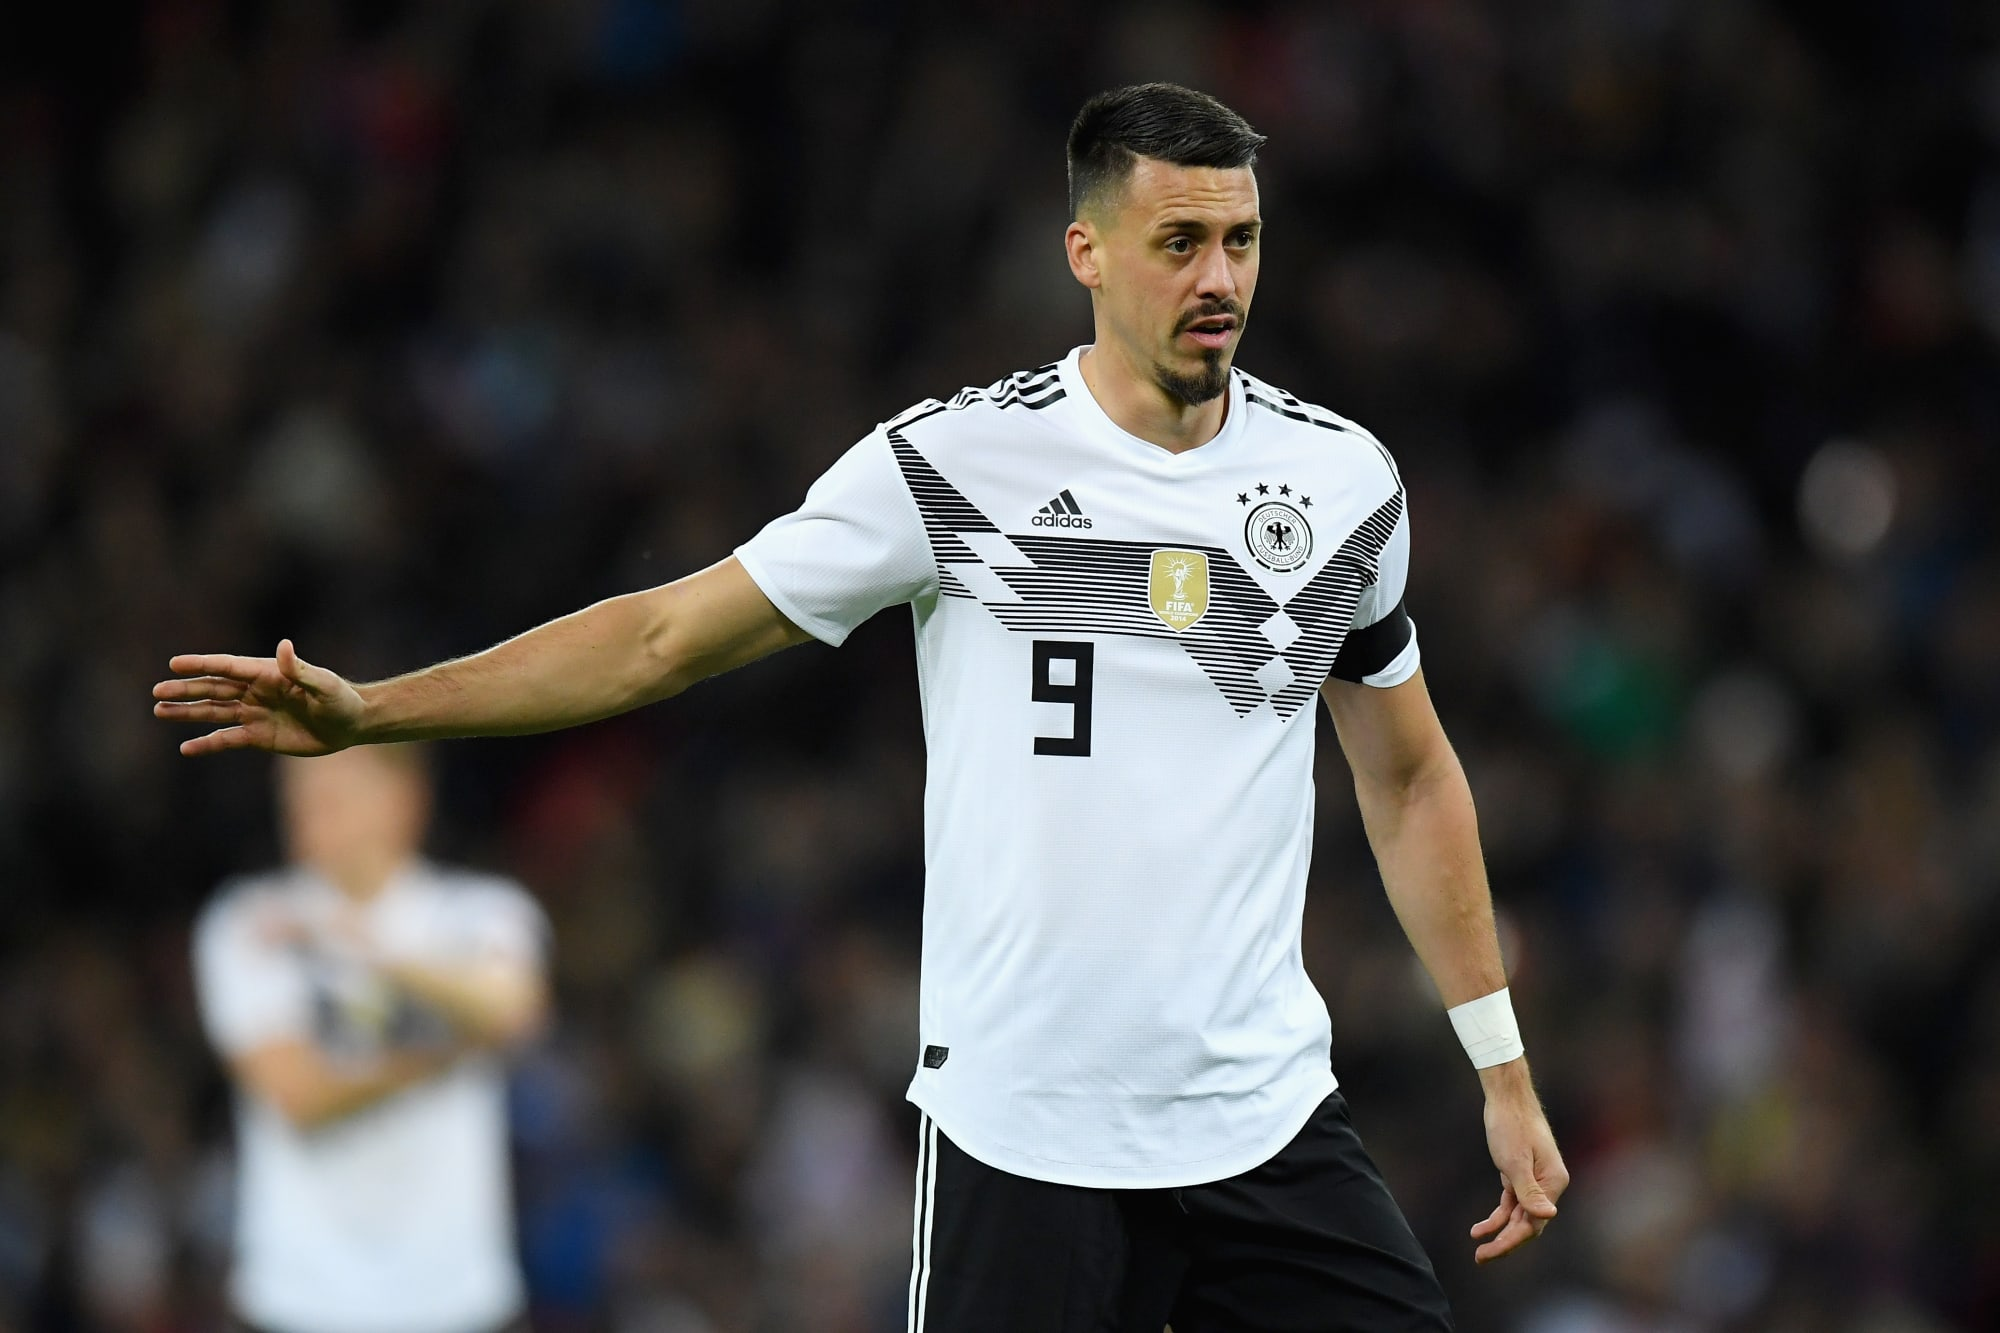 Bayern Munich confirm the signing of Sandro Wagner from